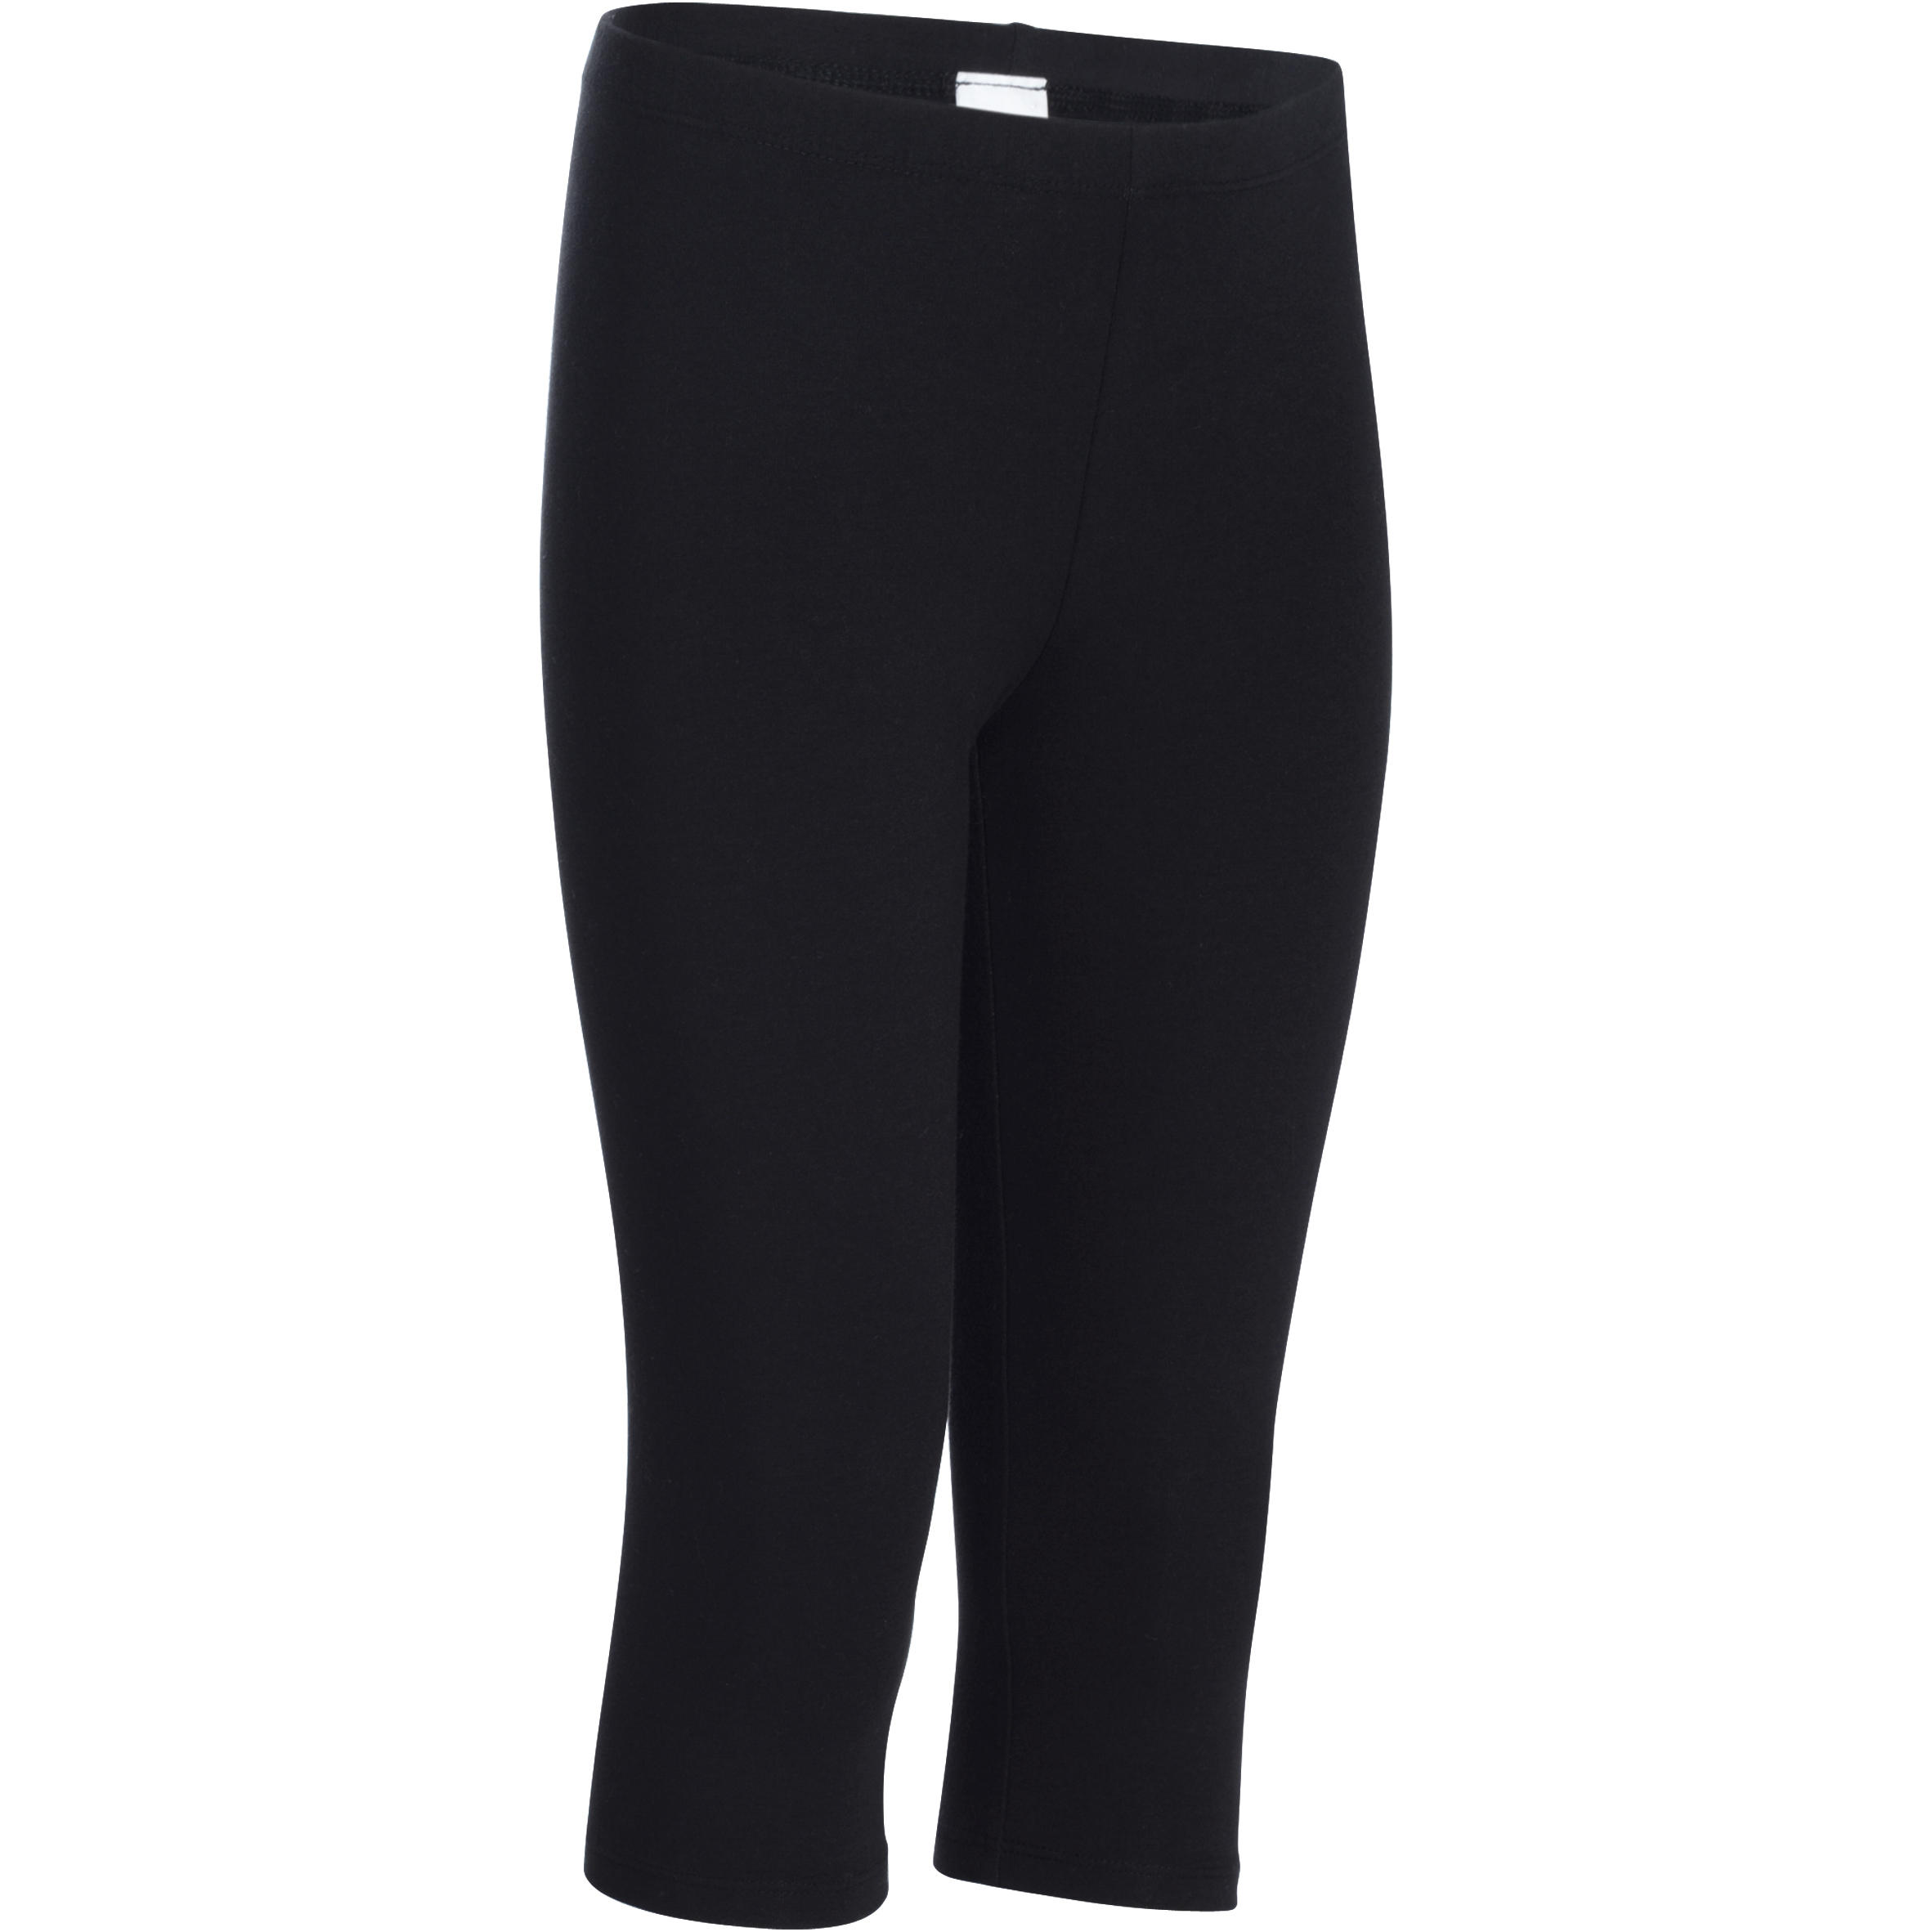 Girls' Gym Cropped Bottoms - Black